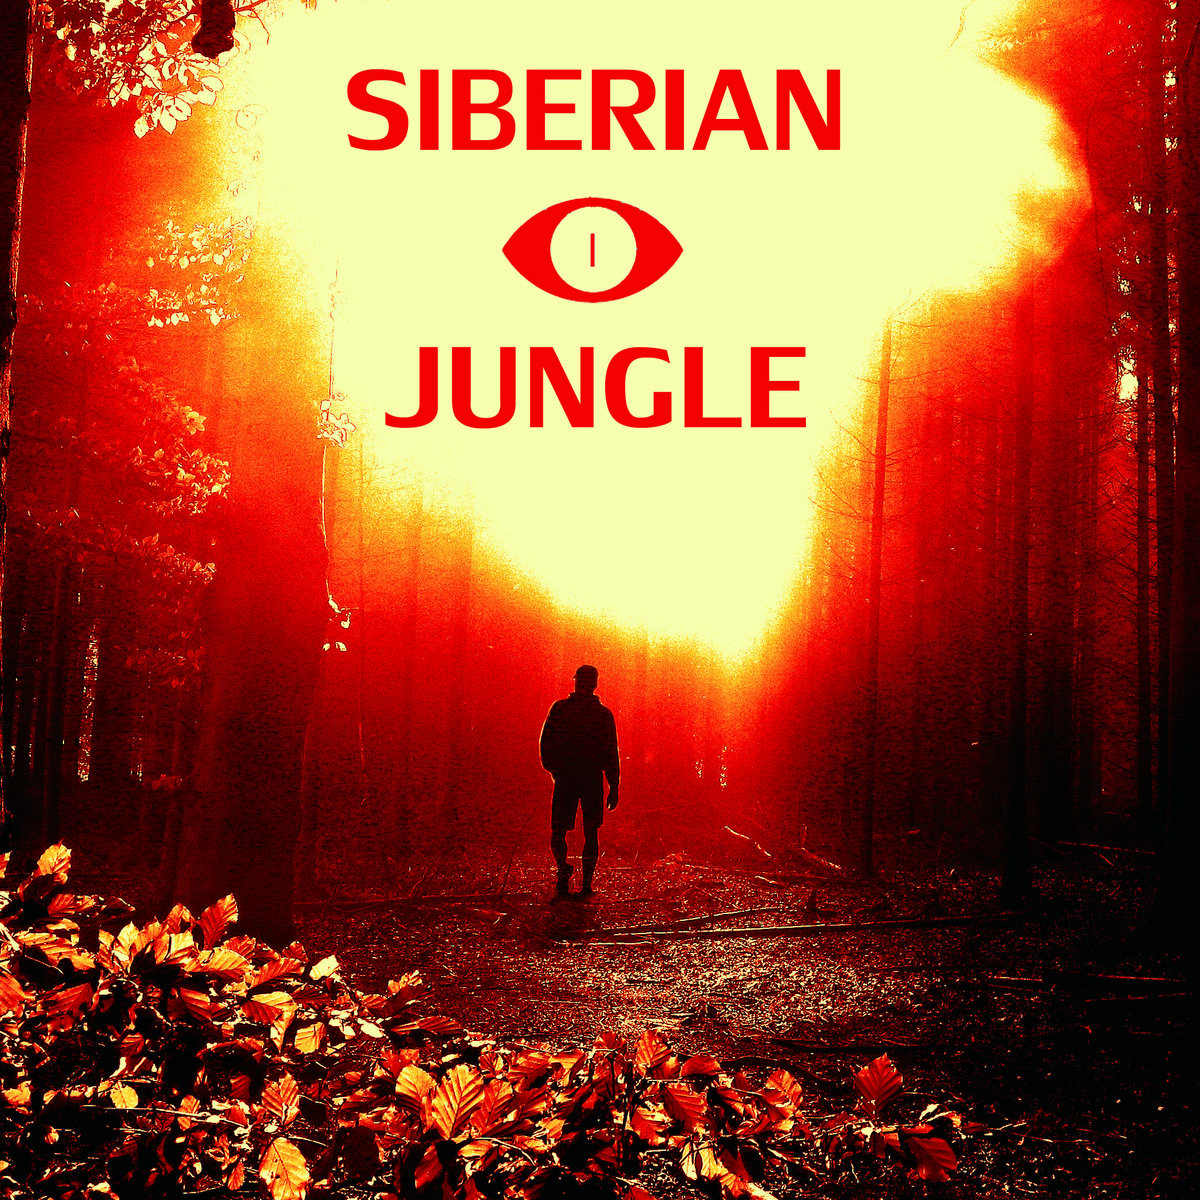 Vospi - Reverence @ 'Siberian Jungle - Volume 1' album (atmospheric drum'n'bass, electronic)